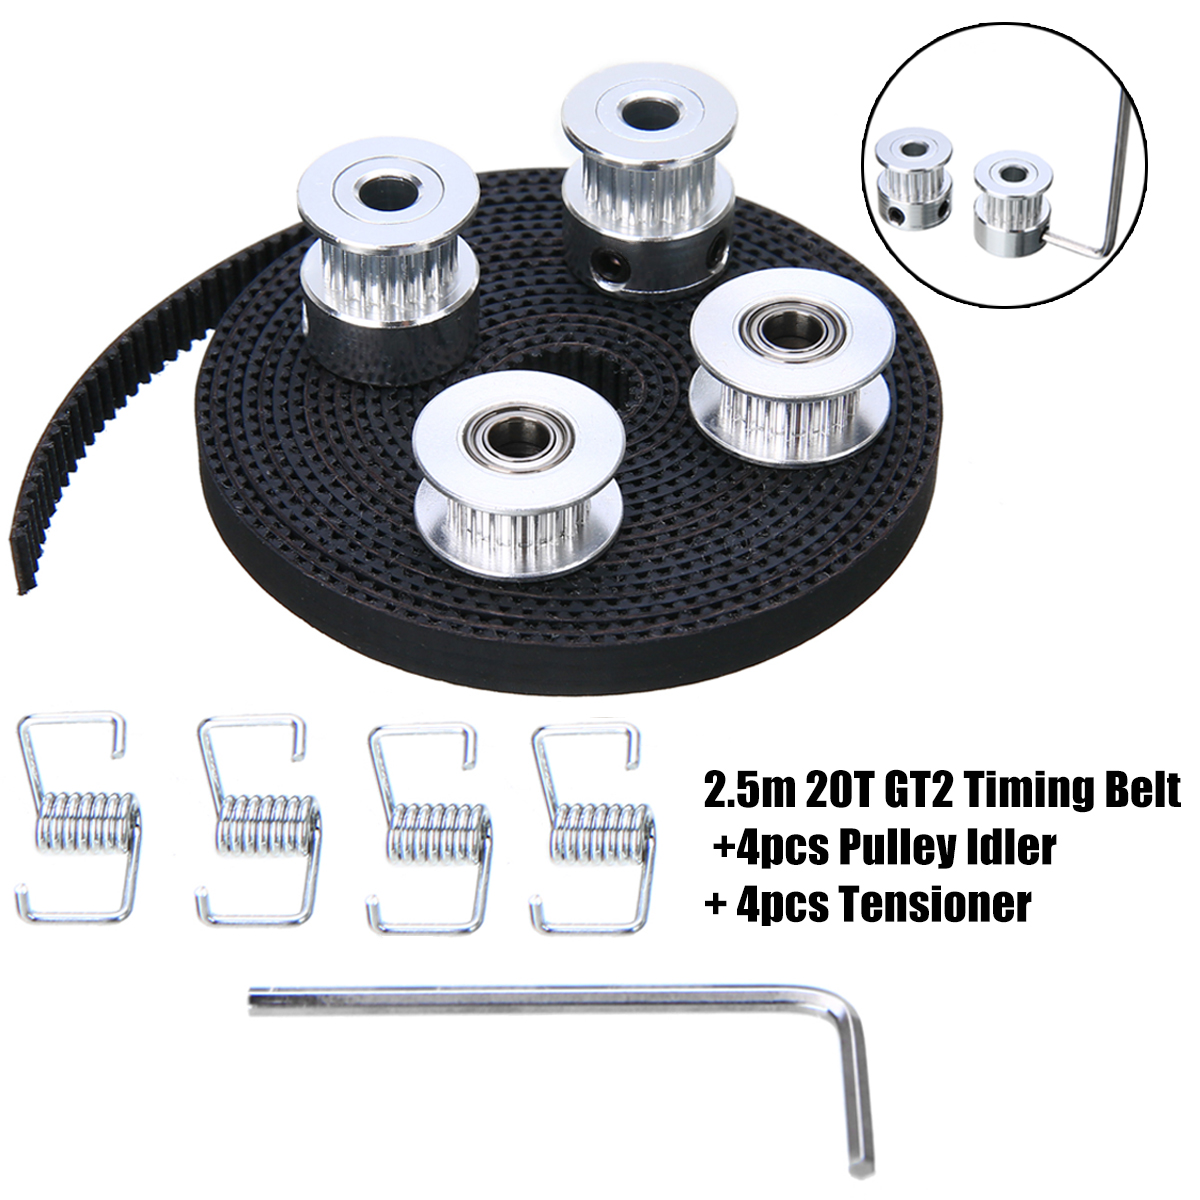 Aluminum 20 Teeth GT2 Timing Belt + 4pcs Pulley Idler + 4pcs Tensioner 3D Printer Tool Set цены